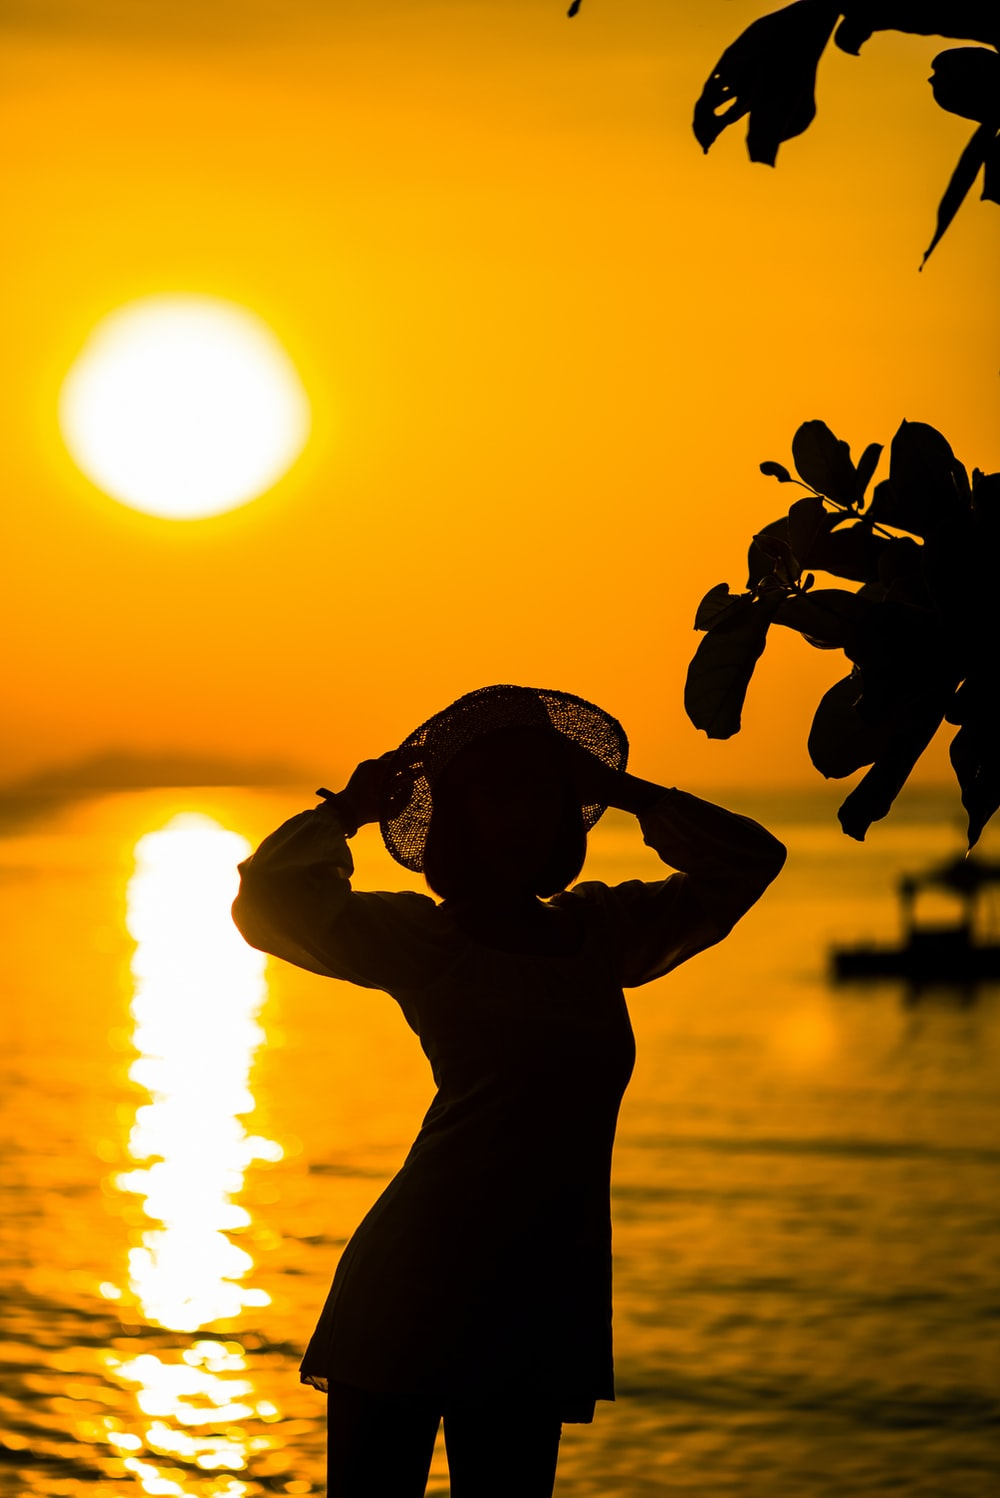 silhouette of man holding a camera